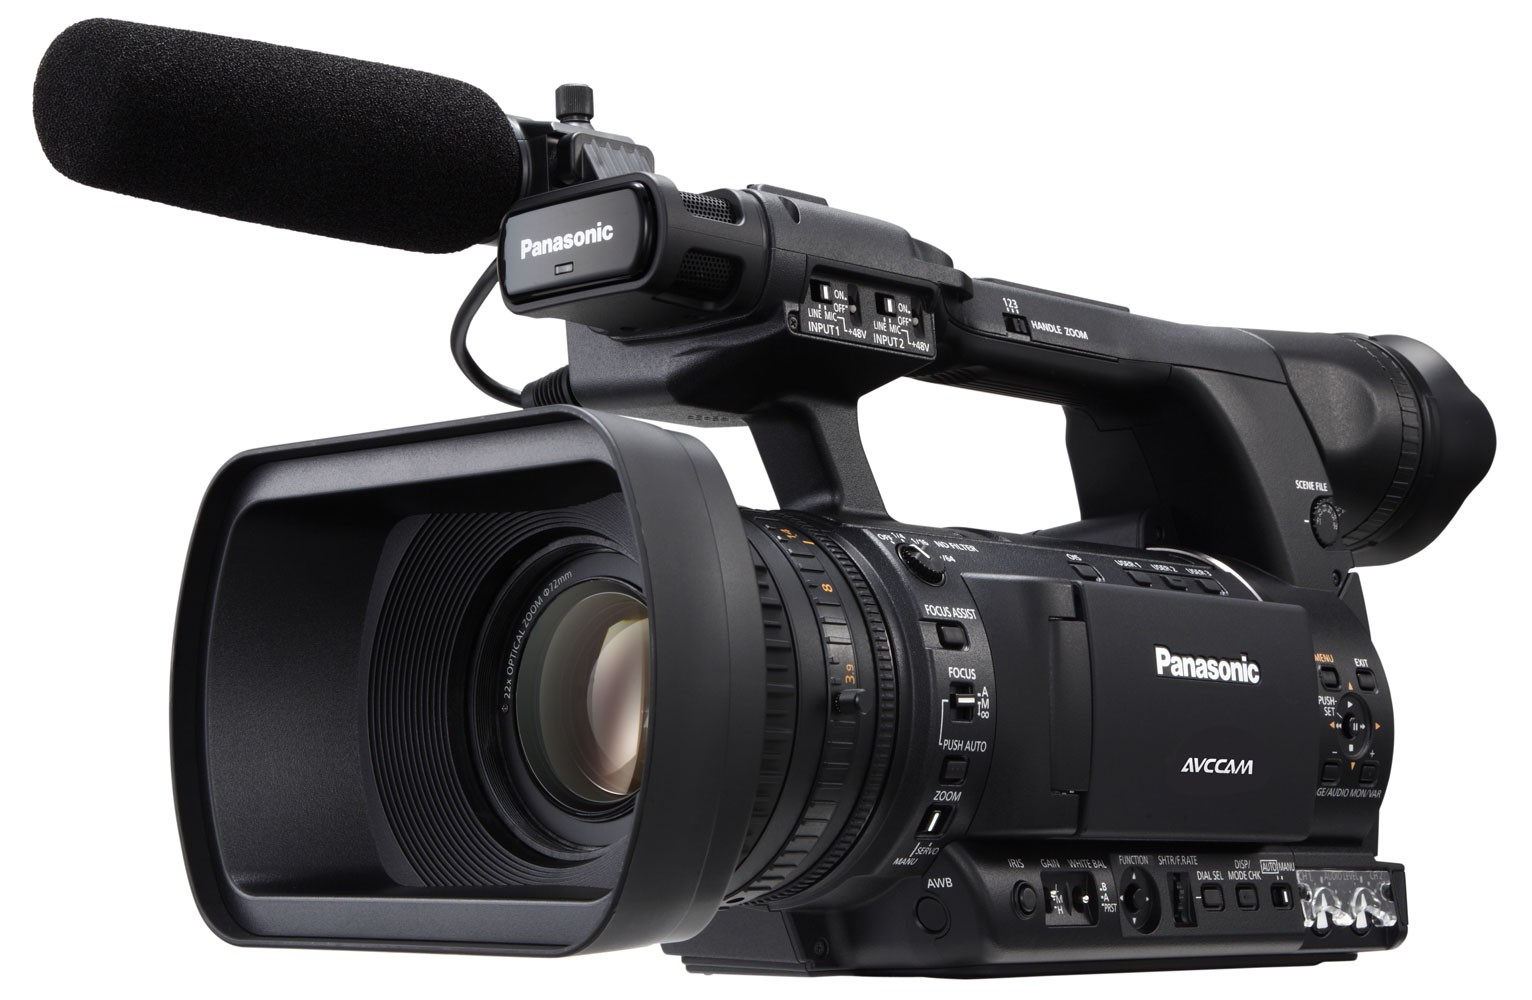 Cameras and Camcorders Panasonic AG-AC130 Camcorder Vidpro VB-H Top Hand Grip for DSLRs